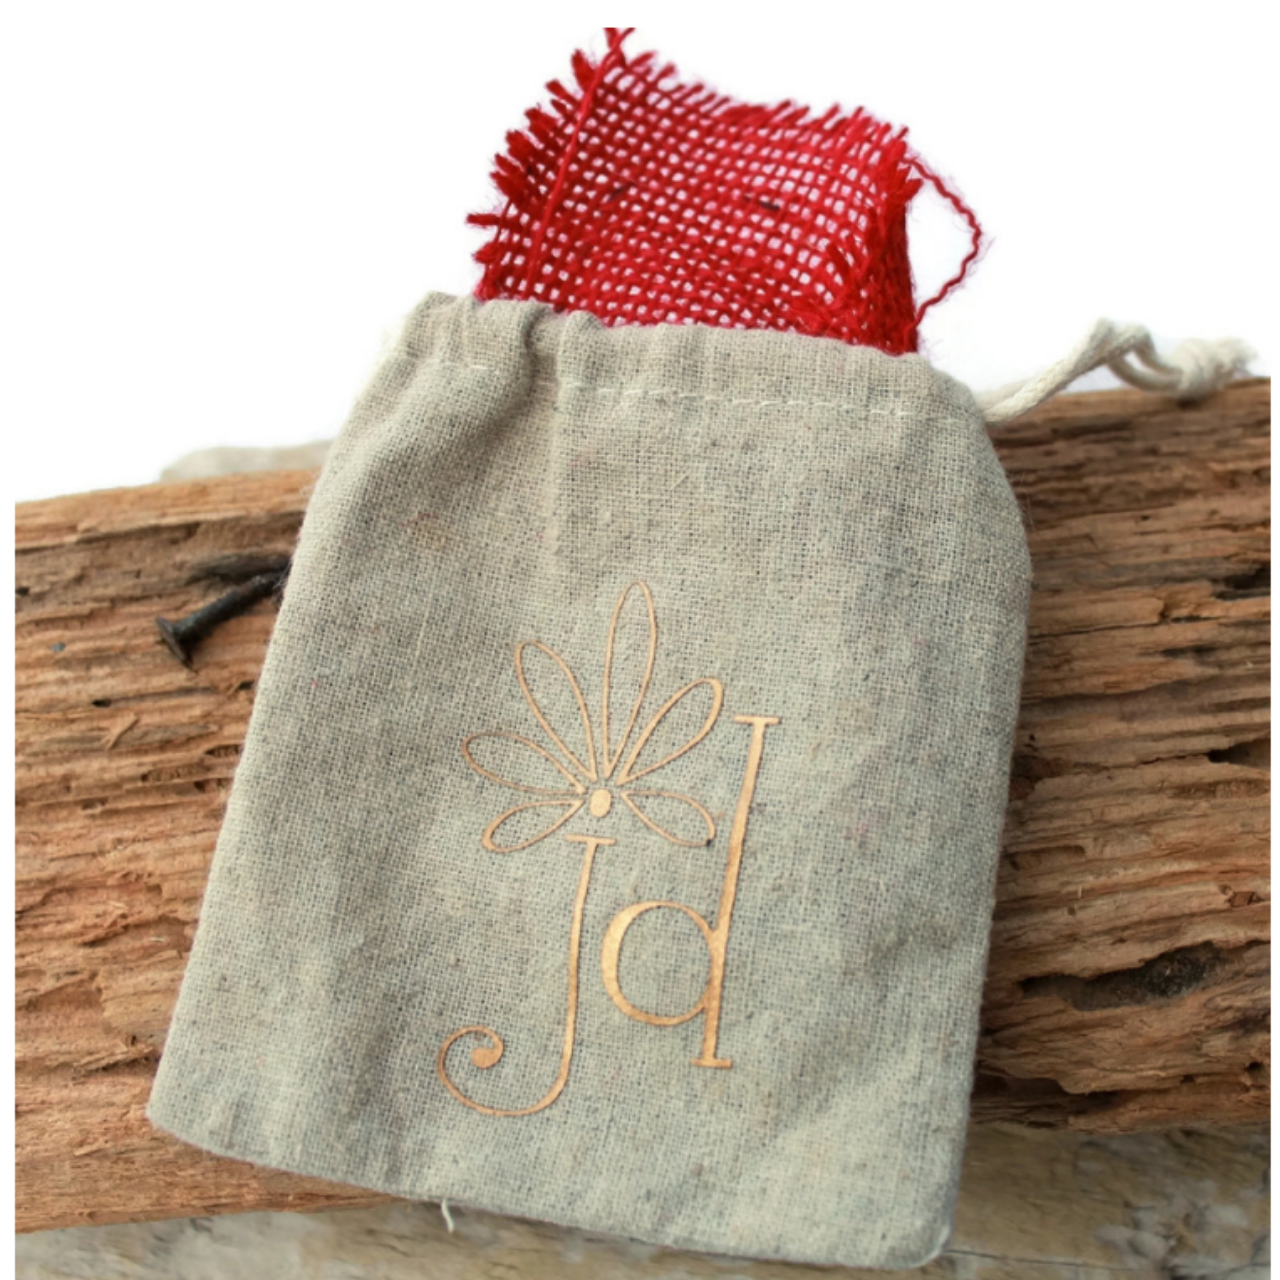 linen-jd-jewelry-bag-with-red-burlap-on wood-background